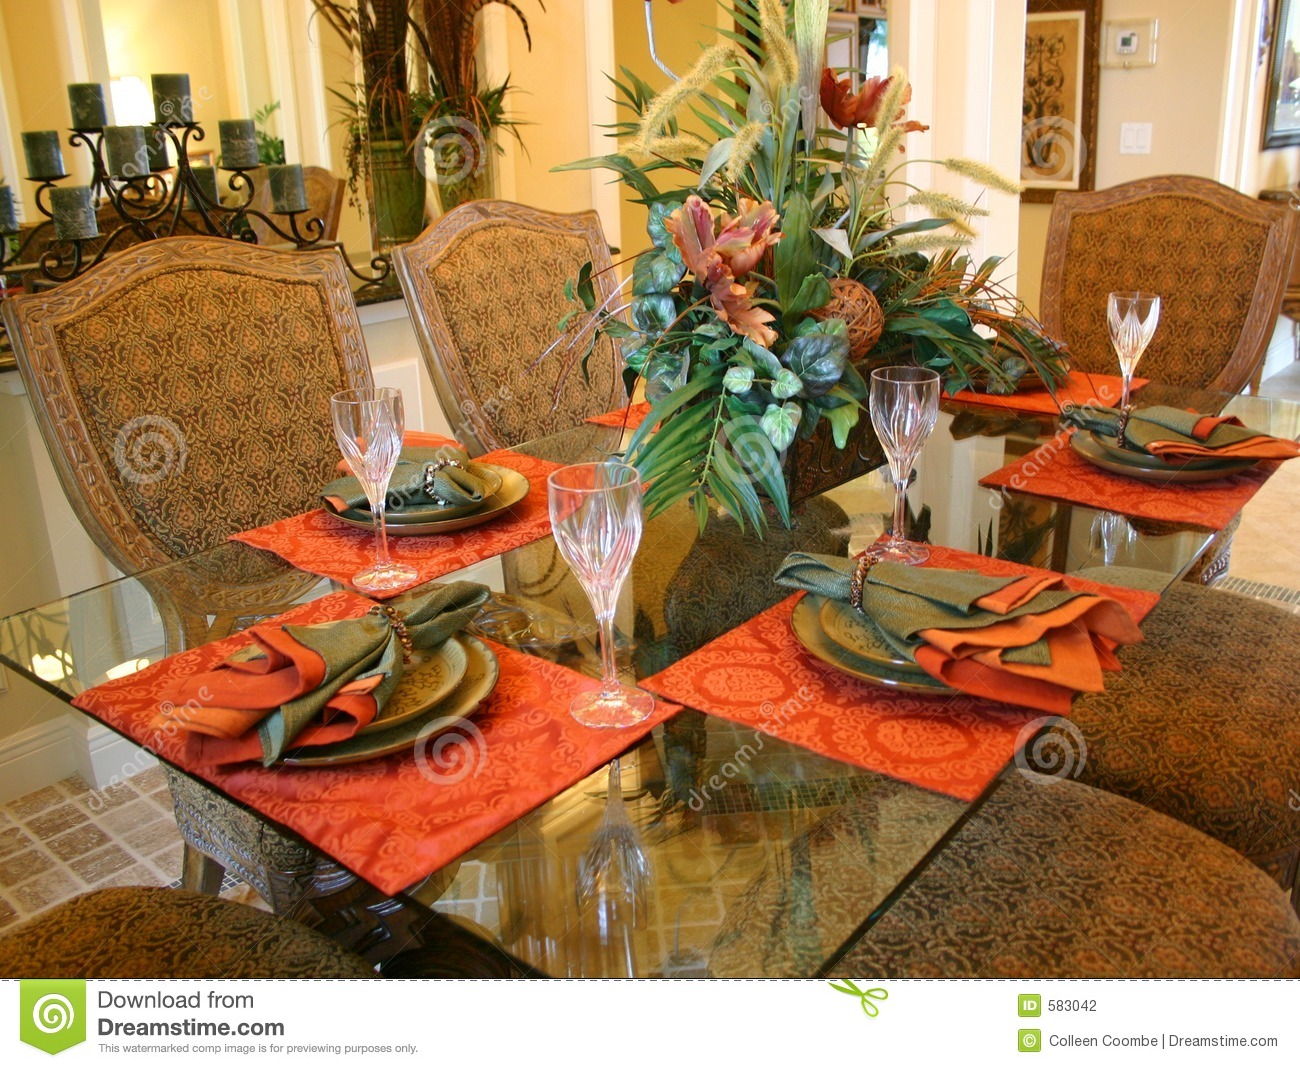 Formal Dining Room Stock Photography Image 583042 : formal dining room 583042 from www.dreamstime.com size 1300 x 1068 jpeg 474kB